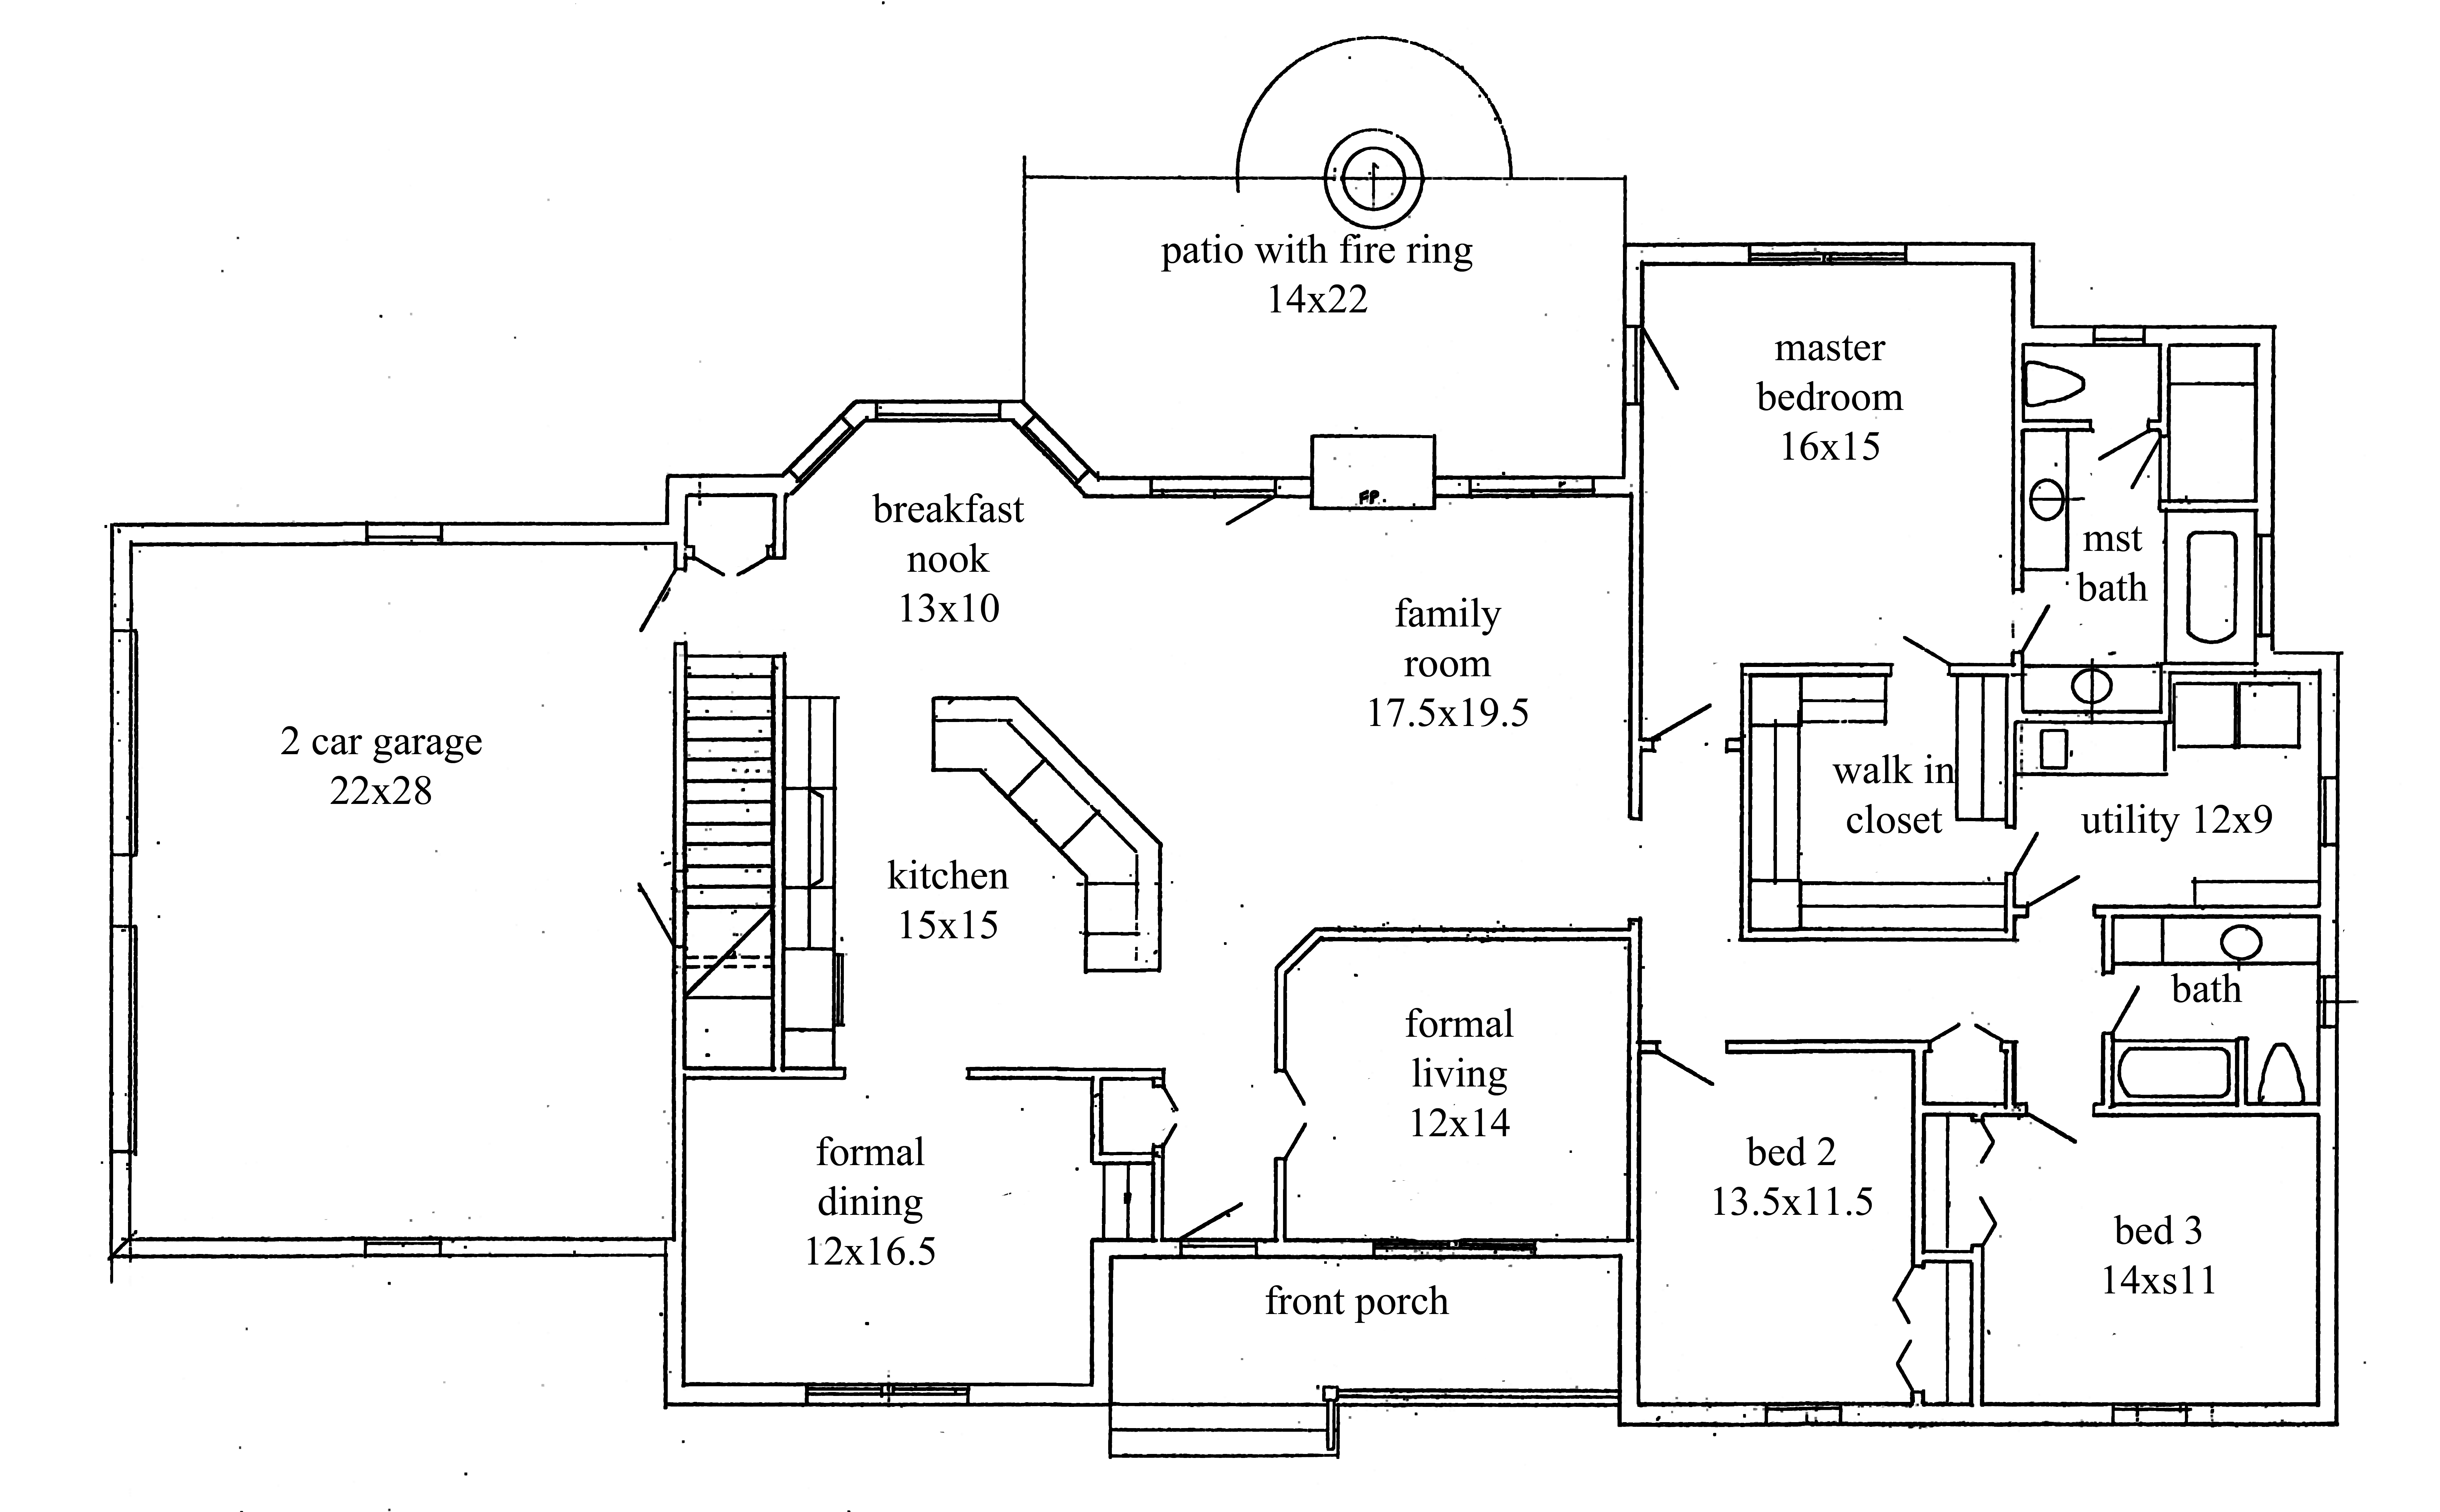 House plans new construction home floor plan for House floor plans with pictures